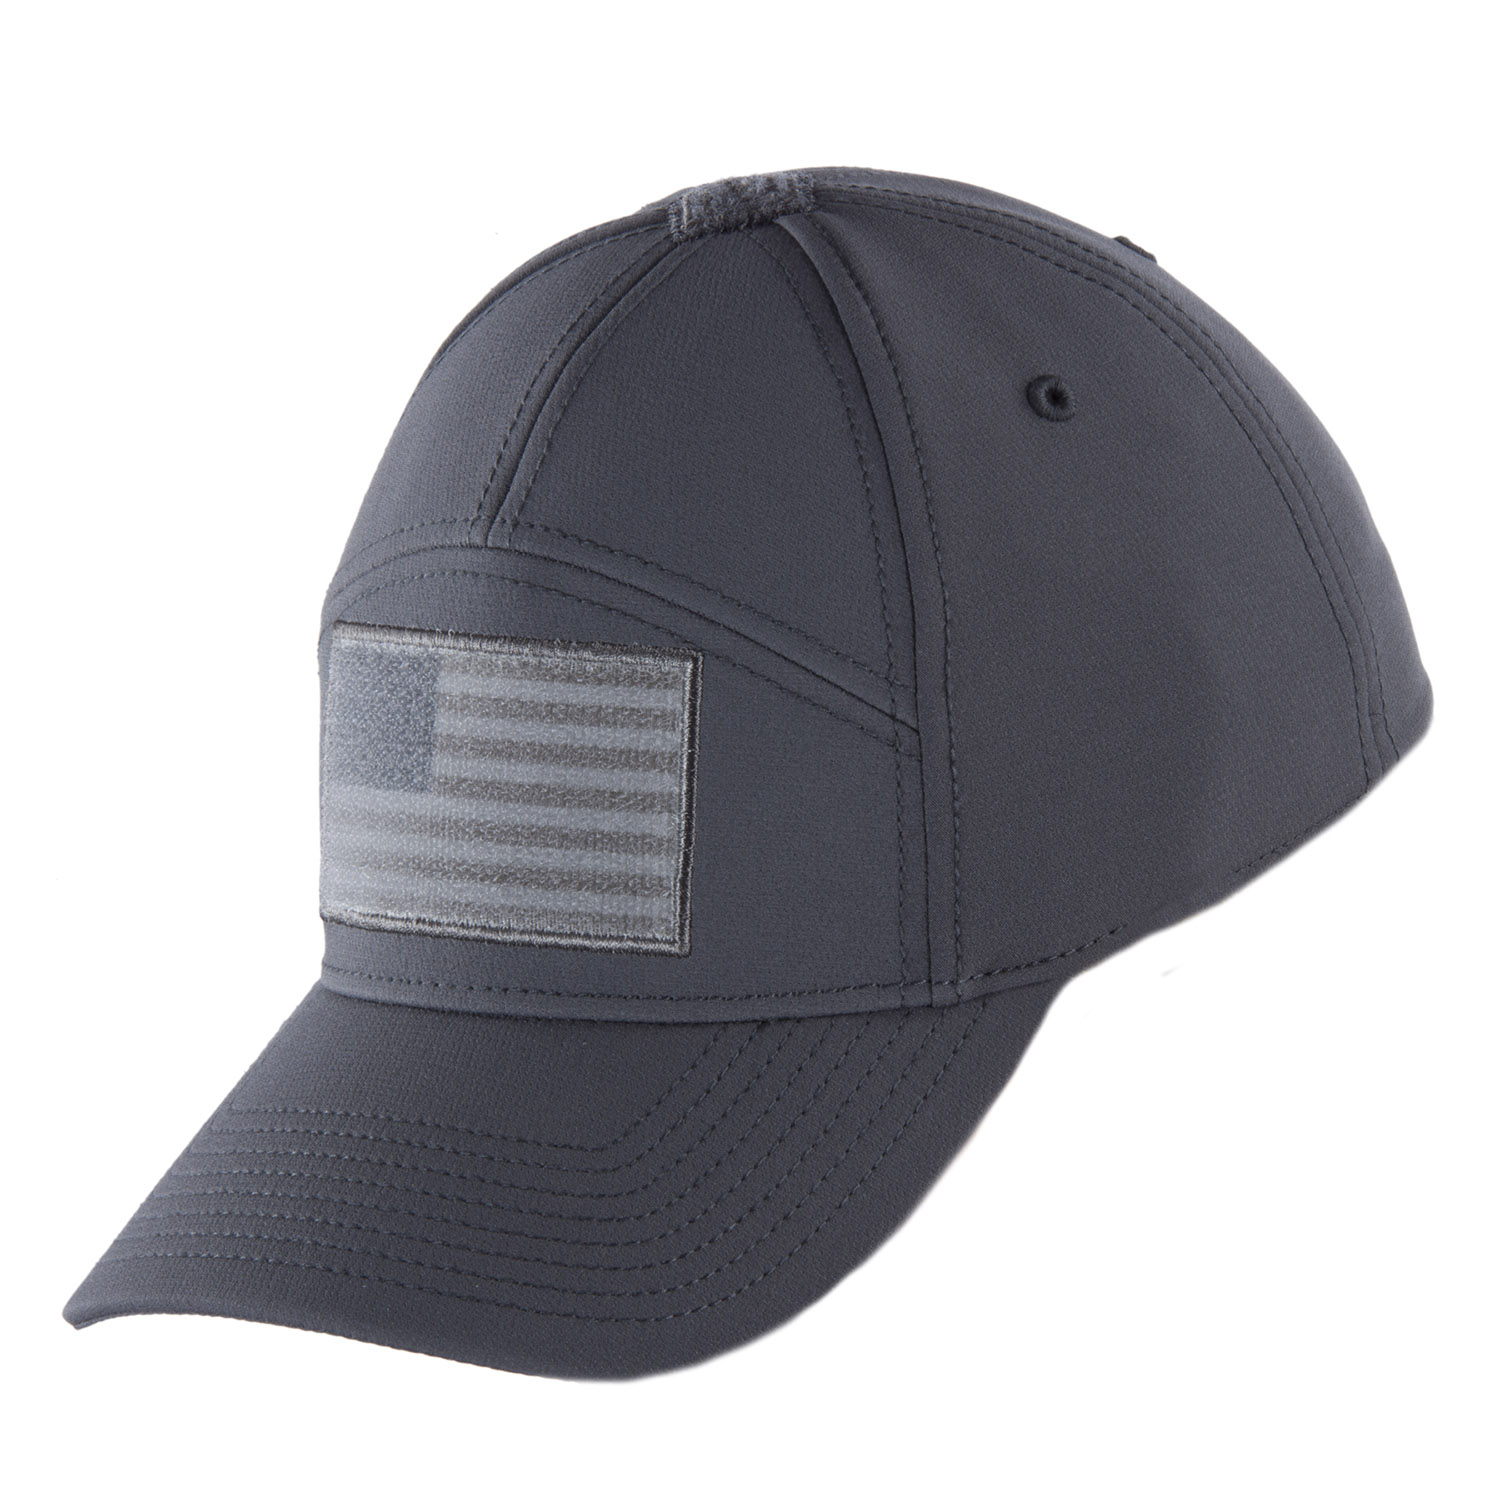 5.11 Tactical Operator 2.0 A-Flex Cap